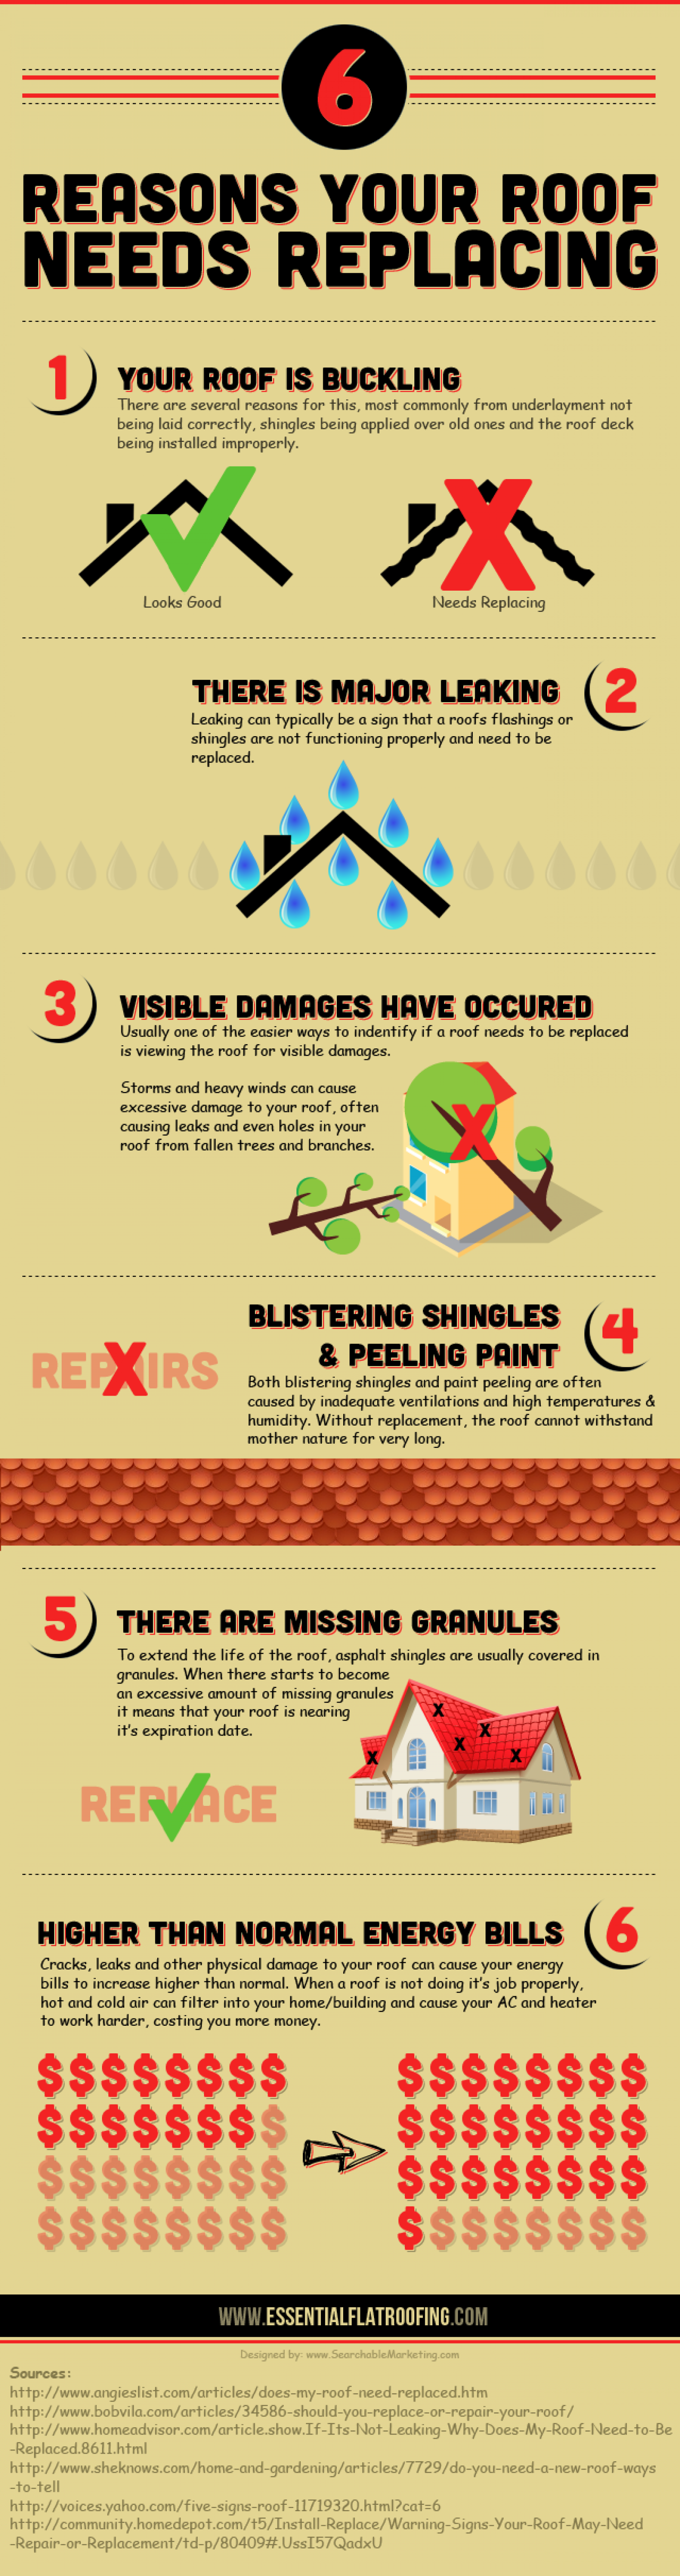 6 Reasons Your Roof Needs Replacing Infographic